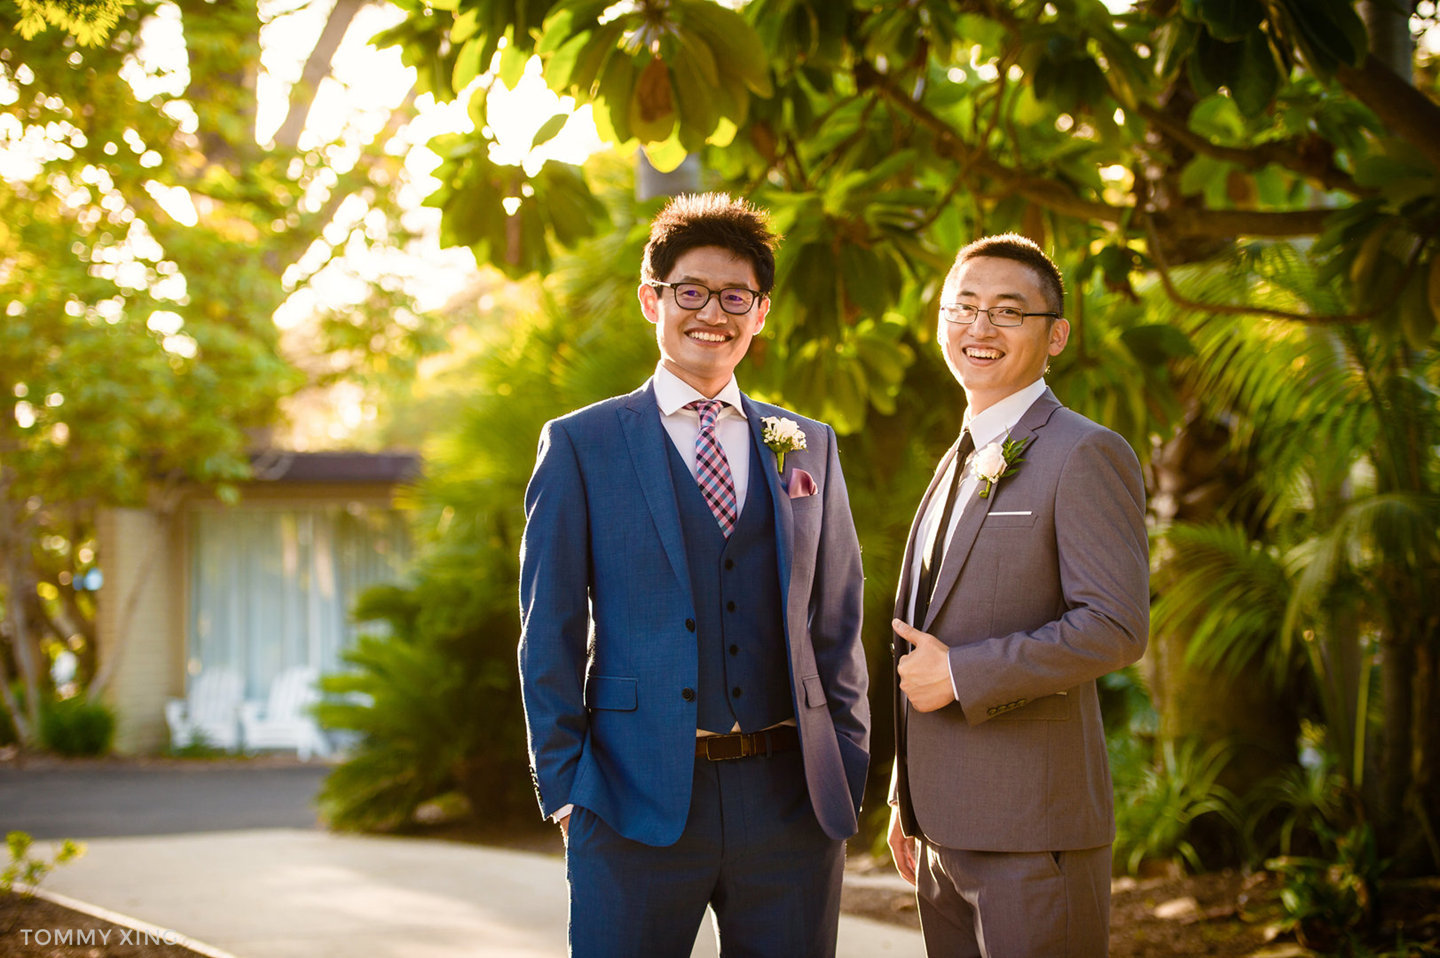 Paradise Point Resort Wedding Xiaolu & Bin San Diego 圣地亚哥婚礼摄影跟拍 Tommy Xing Photography 洛杉矶婚礼婚纱照摄影师 192.jpg